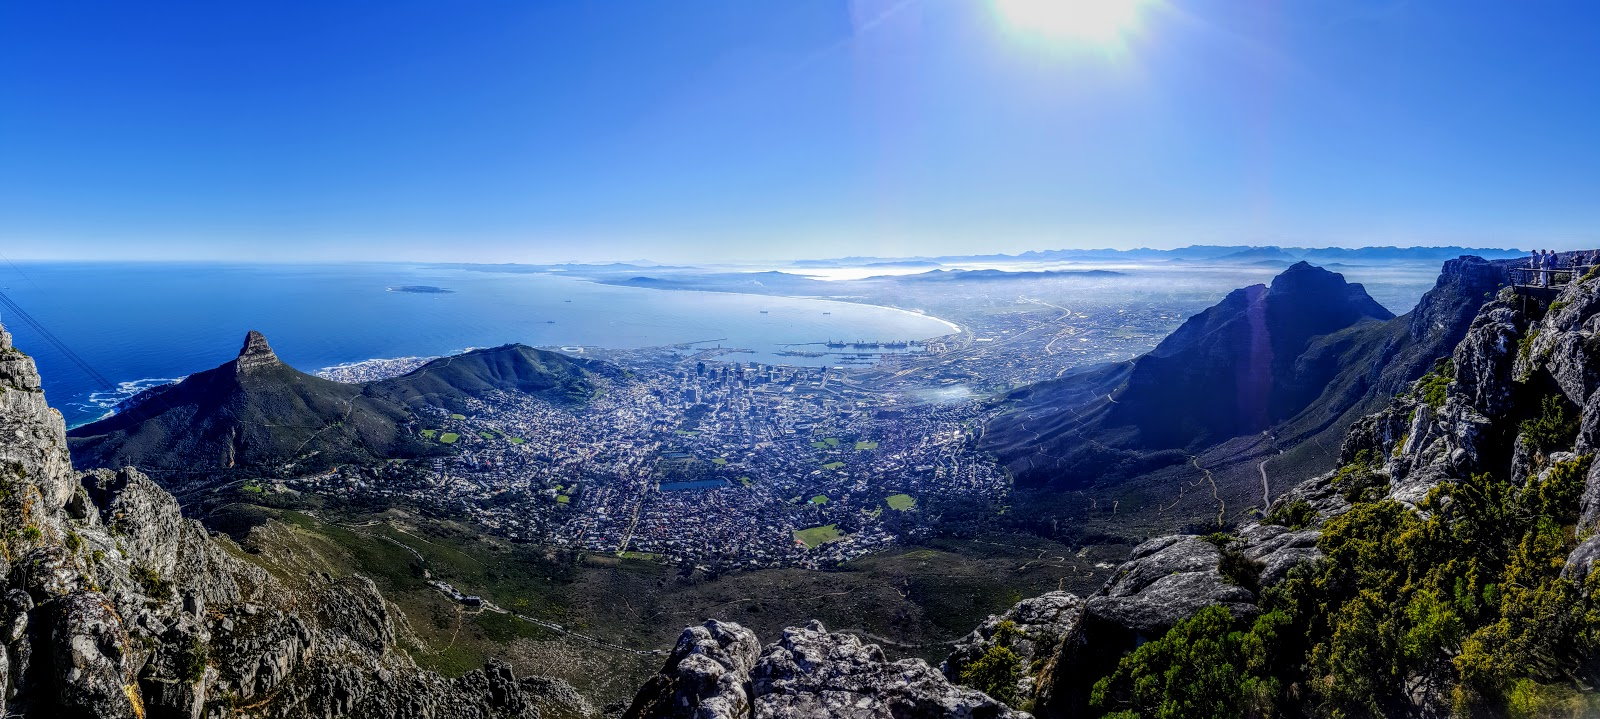 6 Things to Do in Cape Town